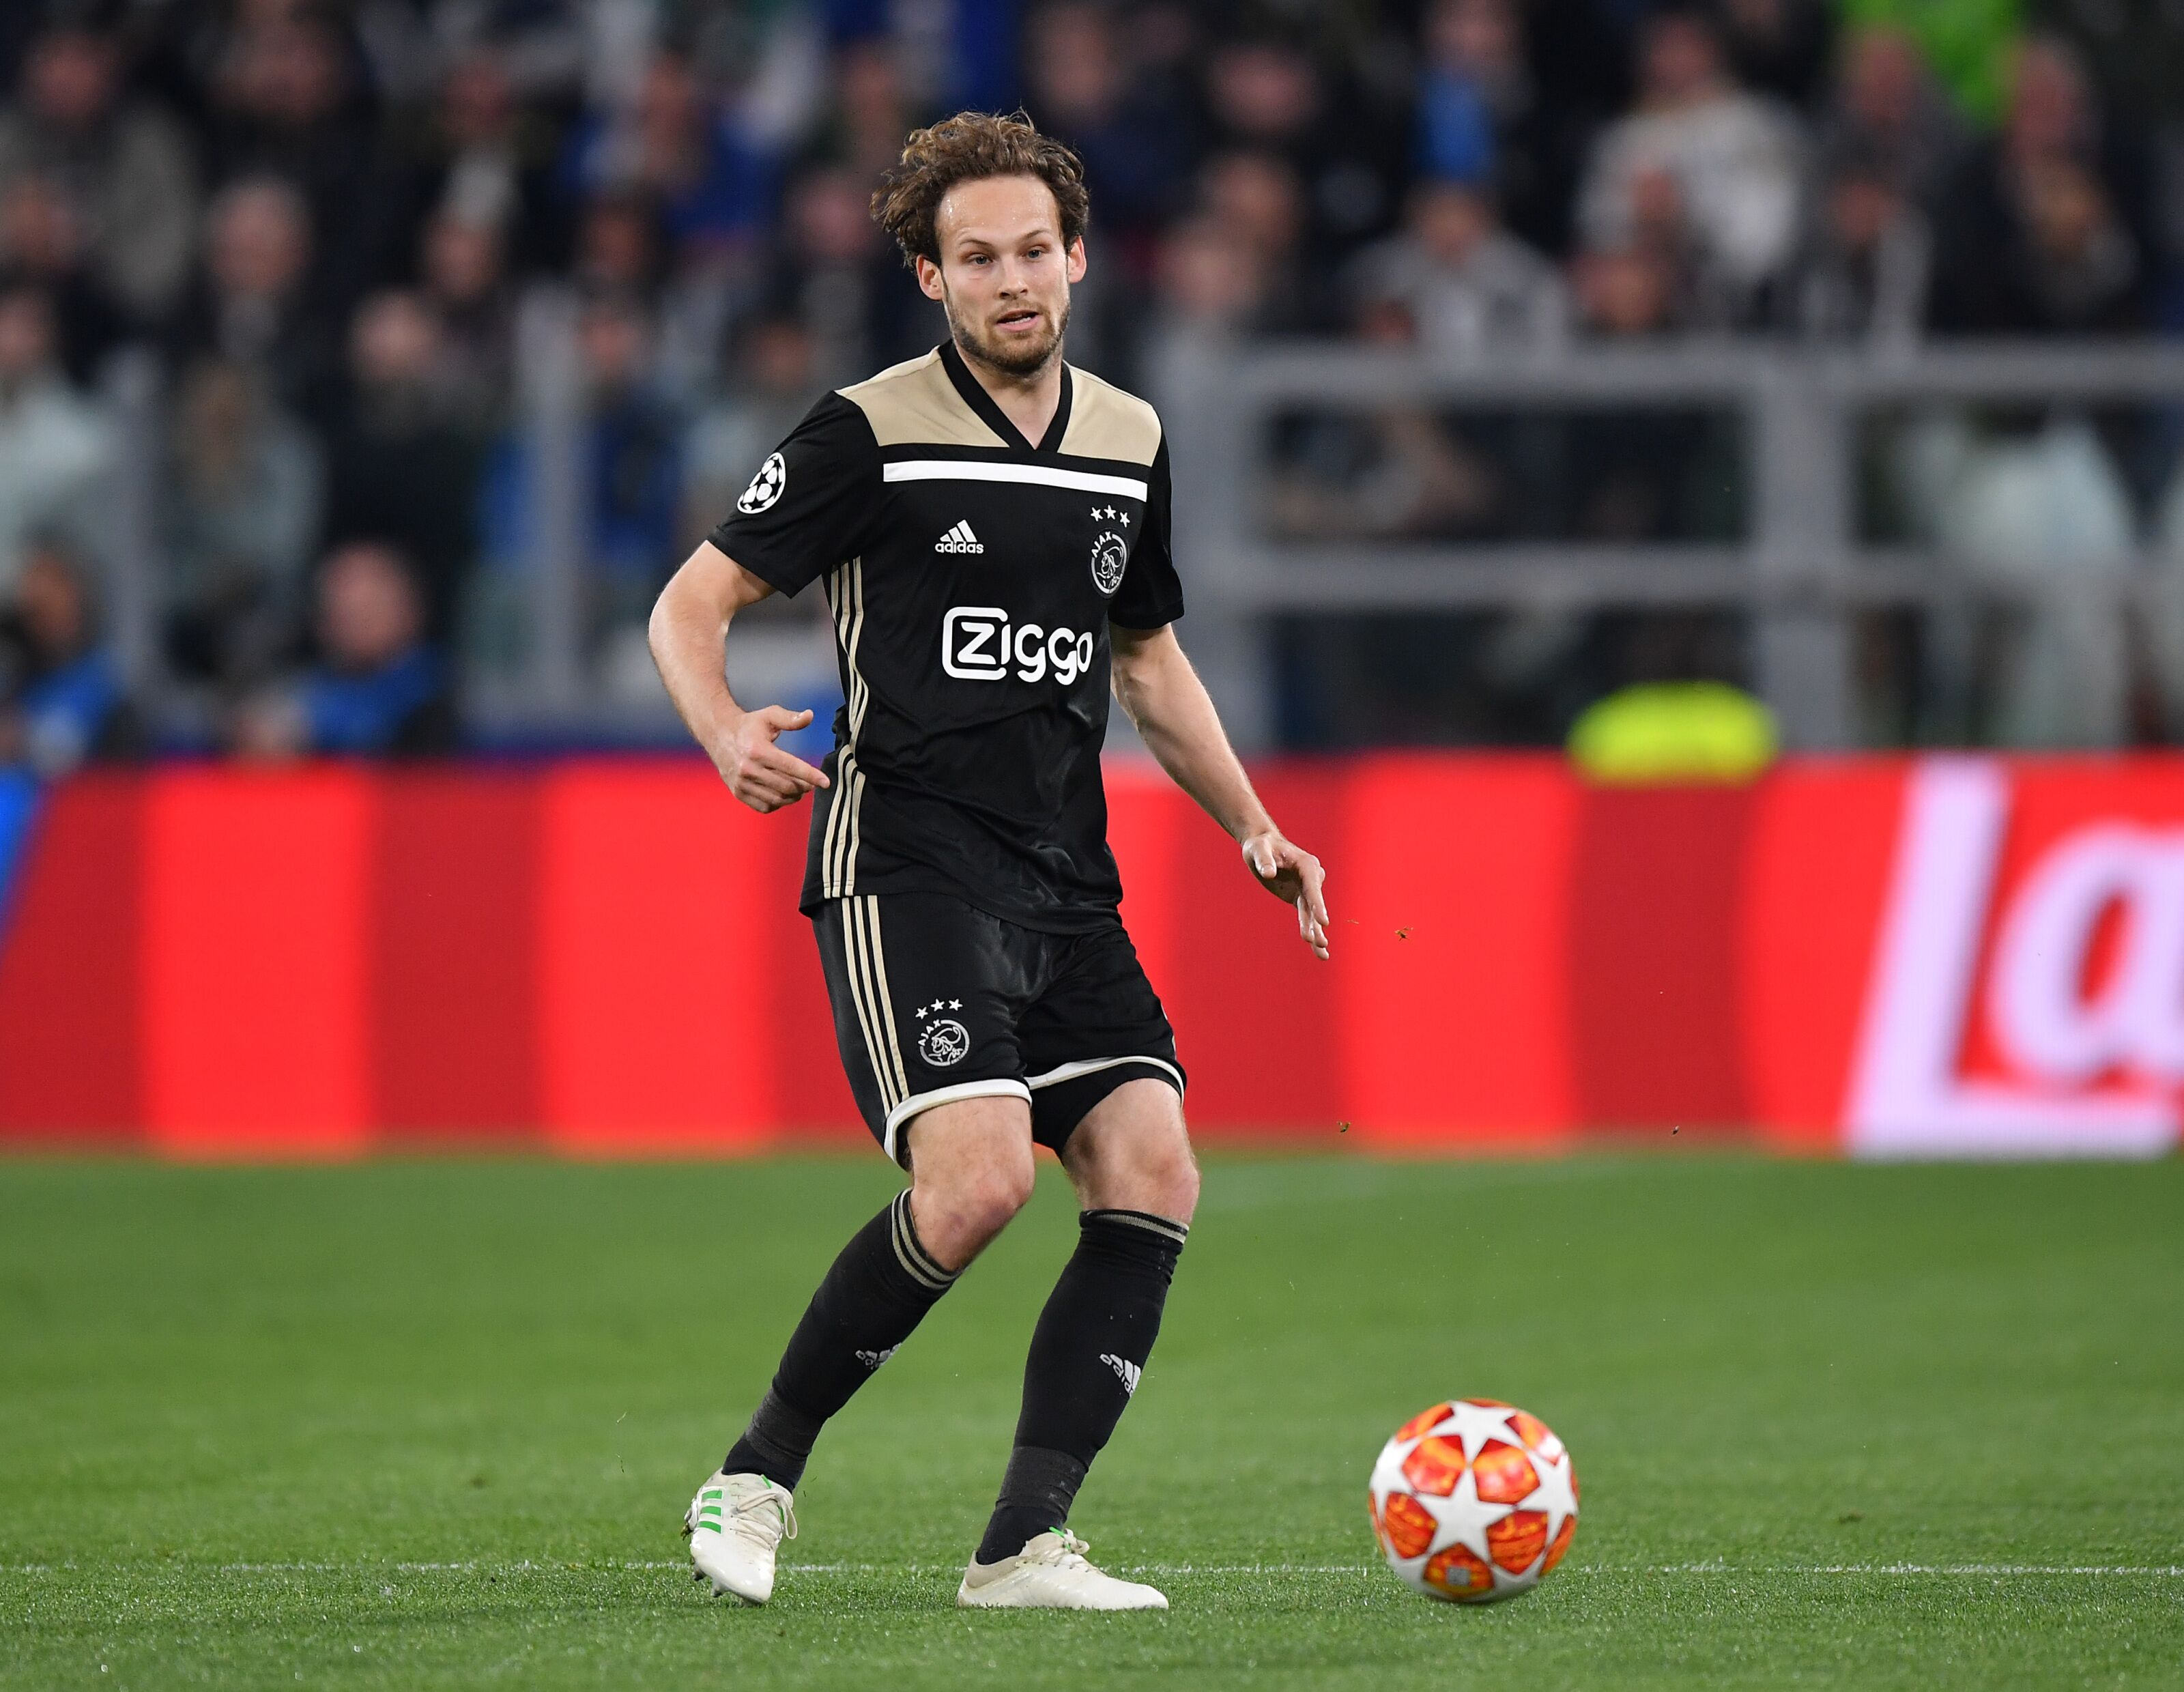 Selling Daley Blind has cost Manchester United a place in the Champions League semi-finals